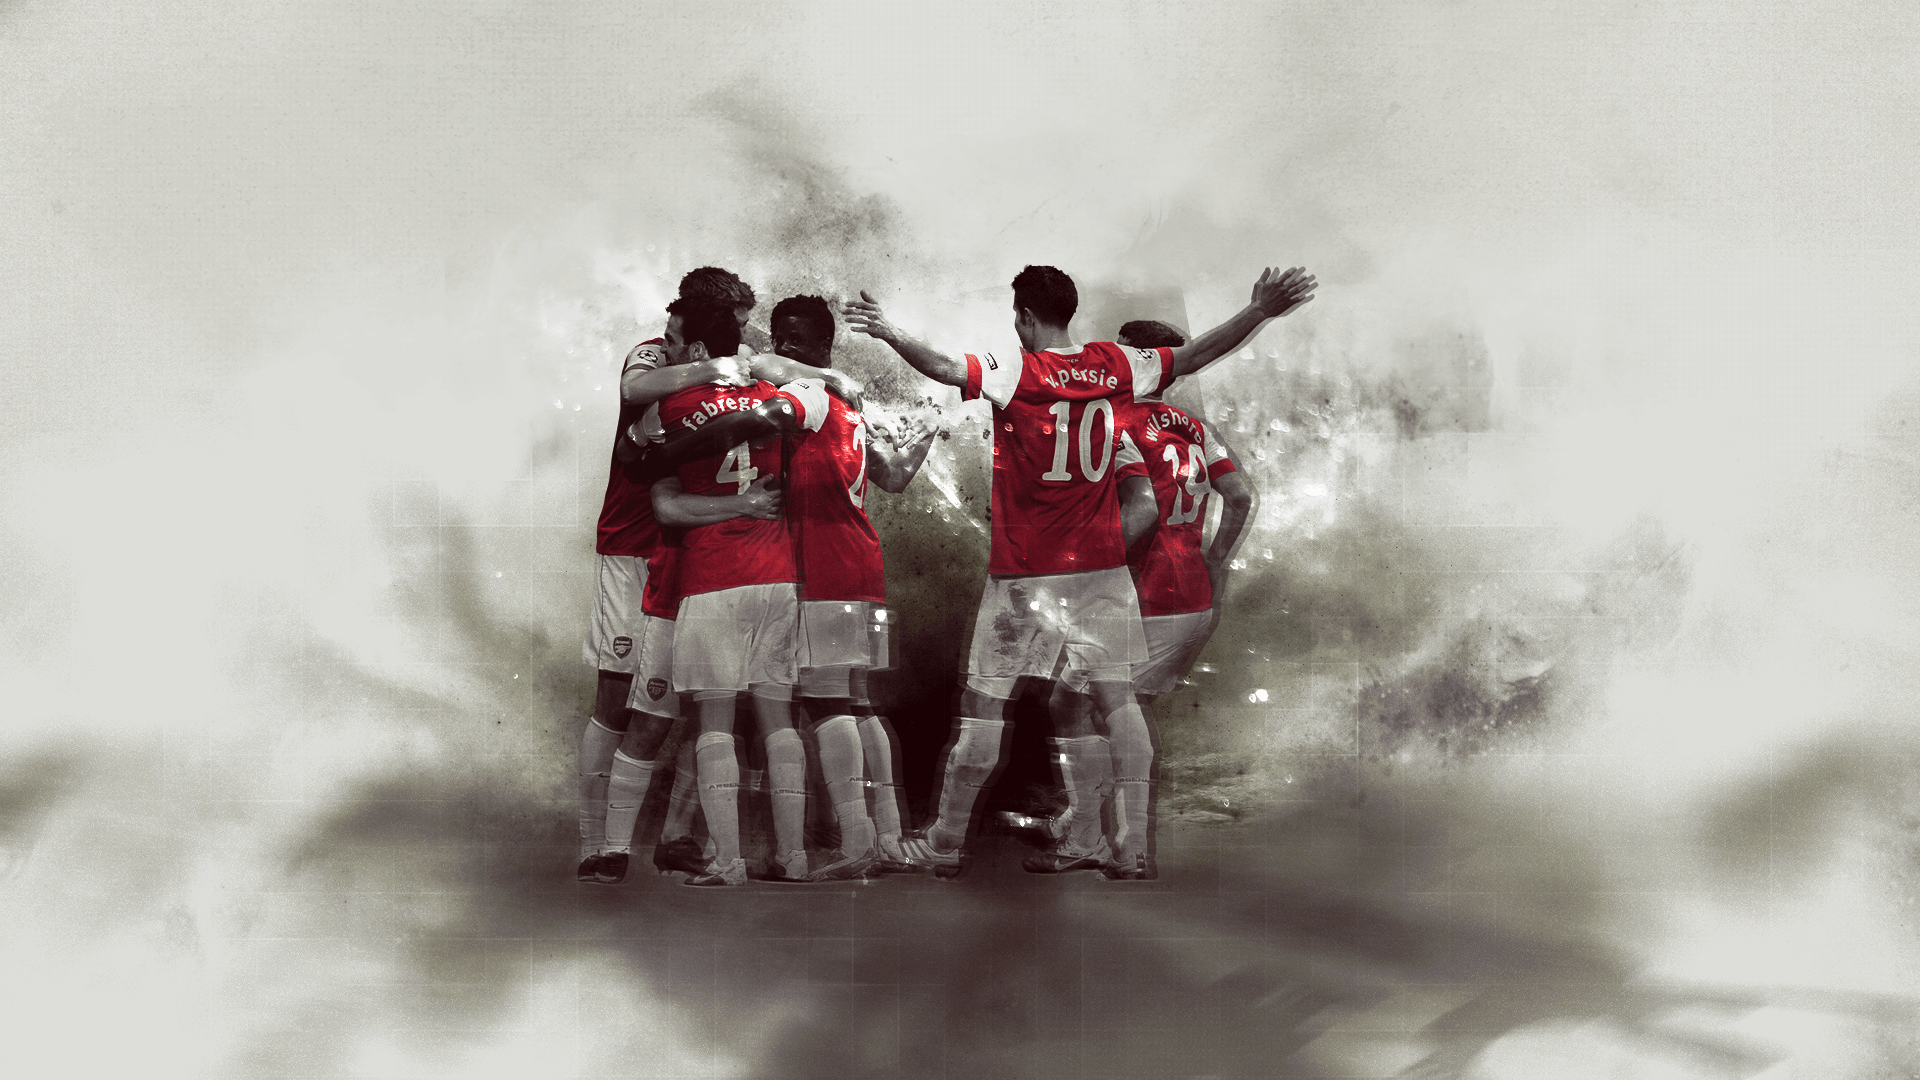 Hd 3d Wallpapers 1080p Free Download For Mobile Arsenal Wallpapers Hd Free Download Pixelstalk Net